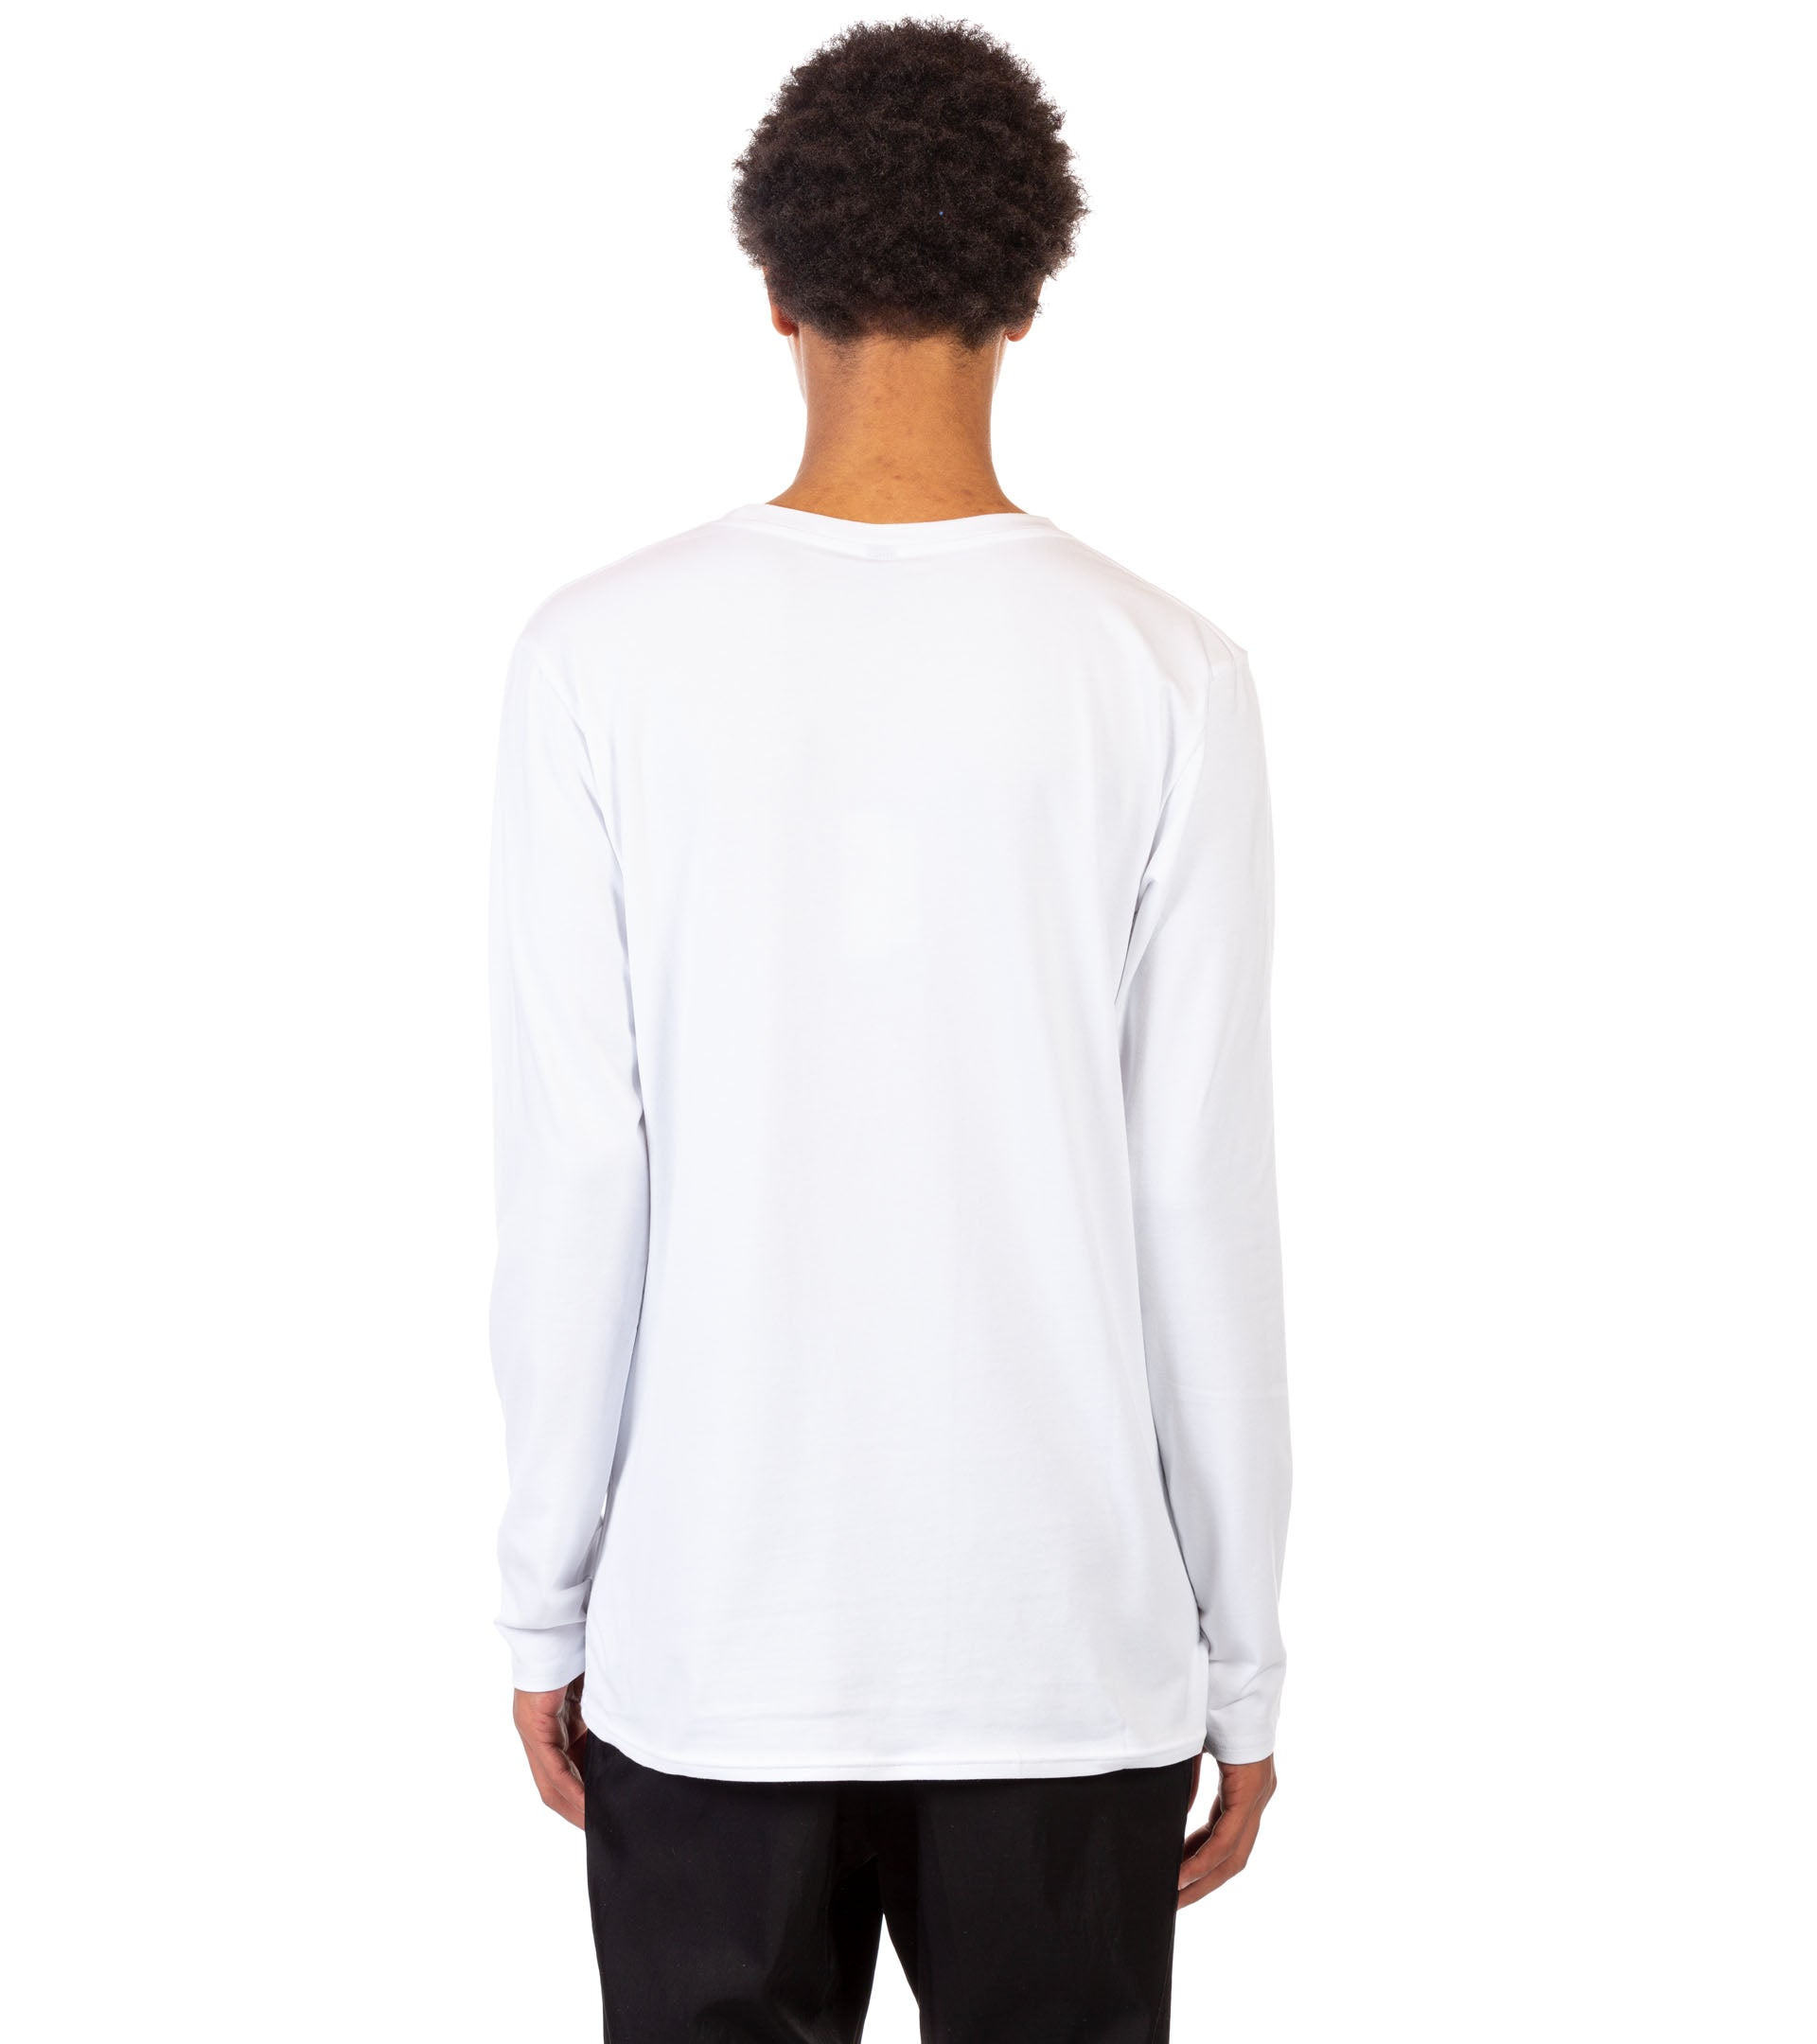 BASIC LONG SLEEVE ESSENTIAL